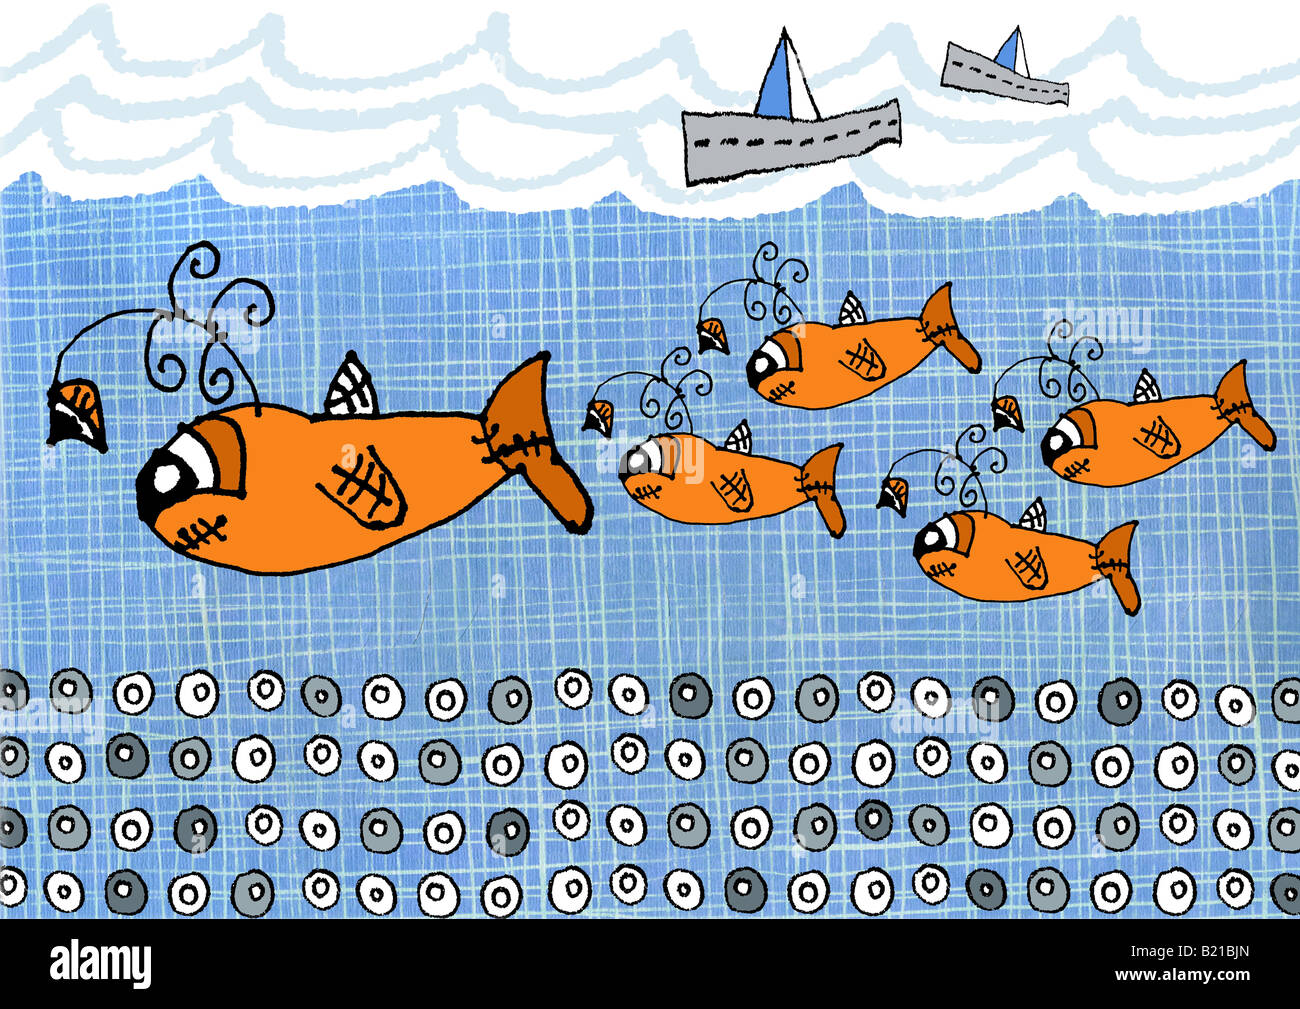 Children's style illustrations of fishes swimming in the sea - Stock Image